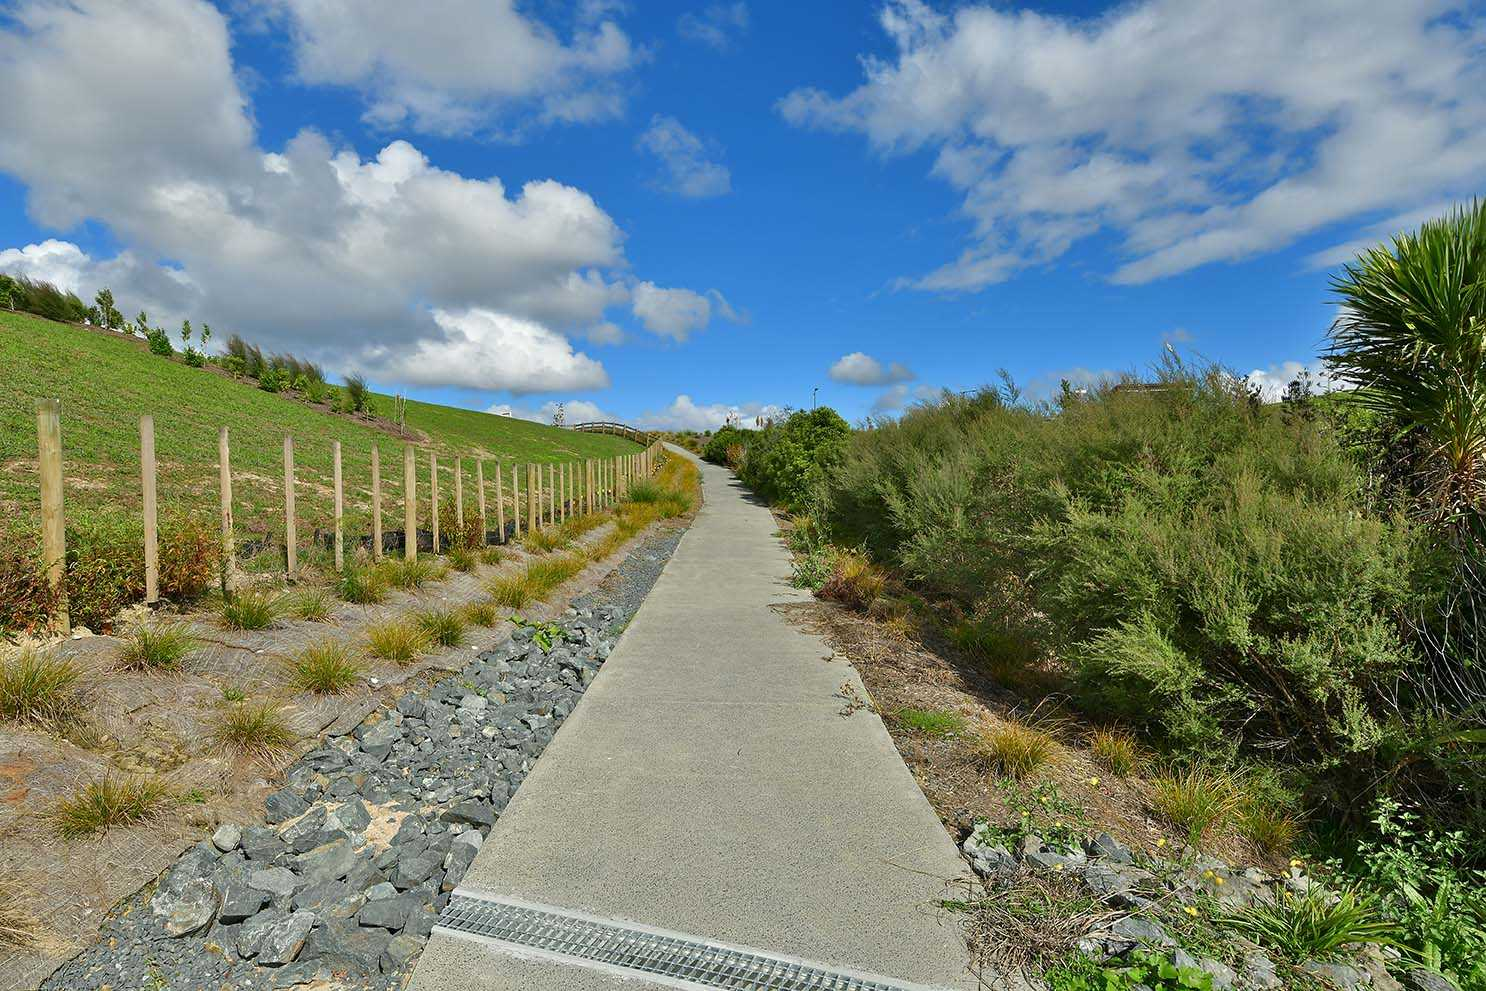 ... a path in the subdivision